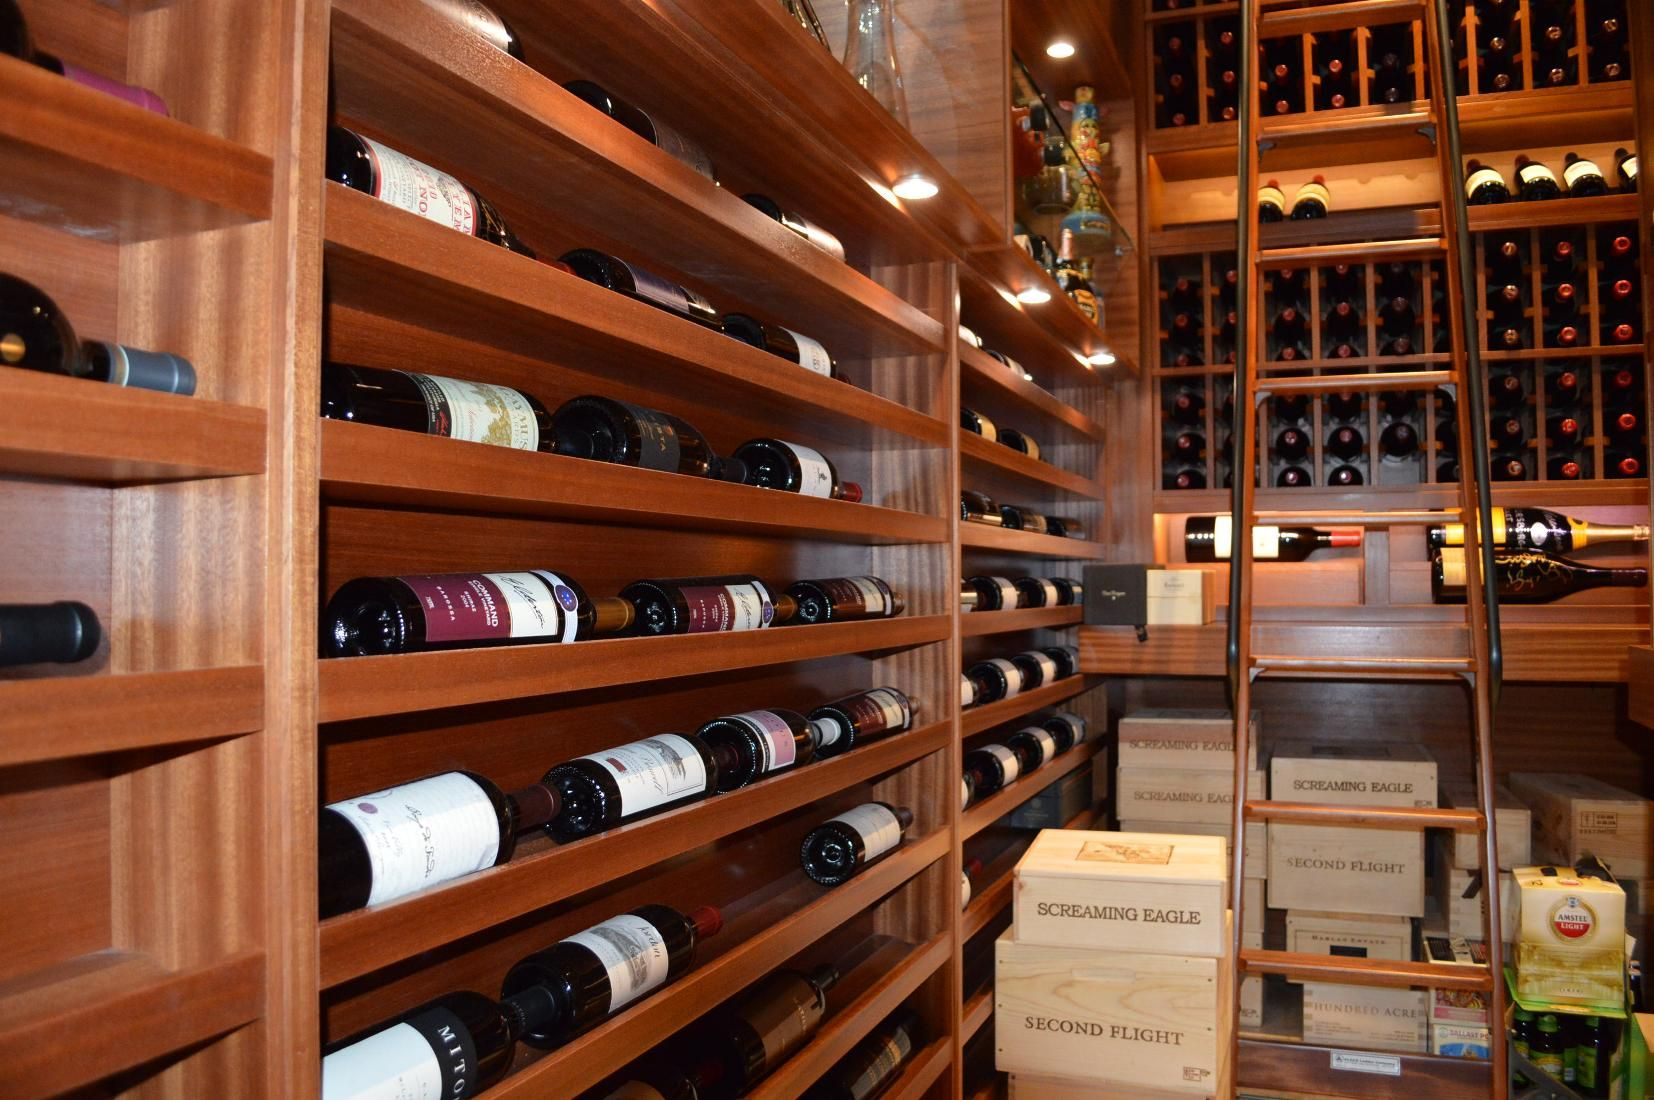 Horizontal Display and Case Storage Racks Miami Custom Wine Cellar & 6. Horizontal Display and Case Storage Racks Miami Custom Wine ...